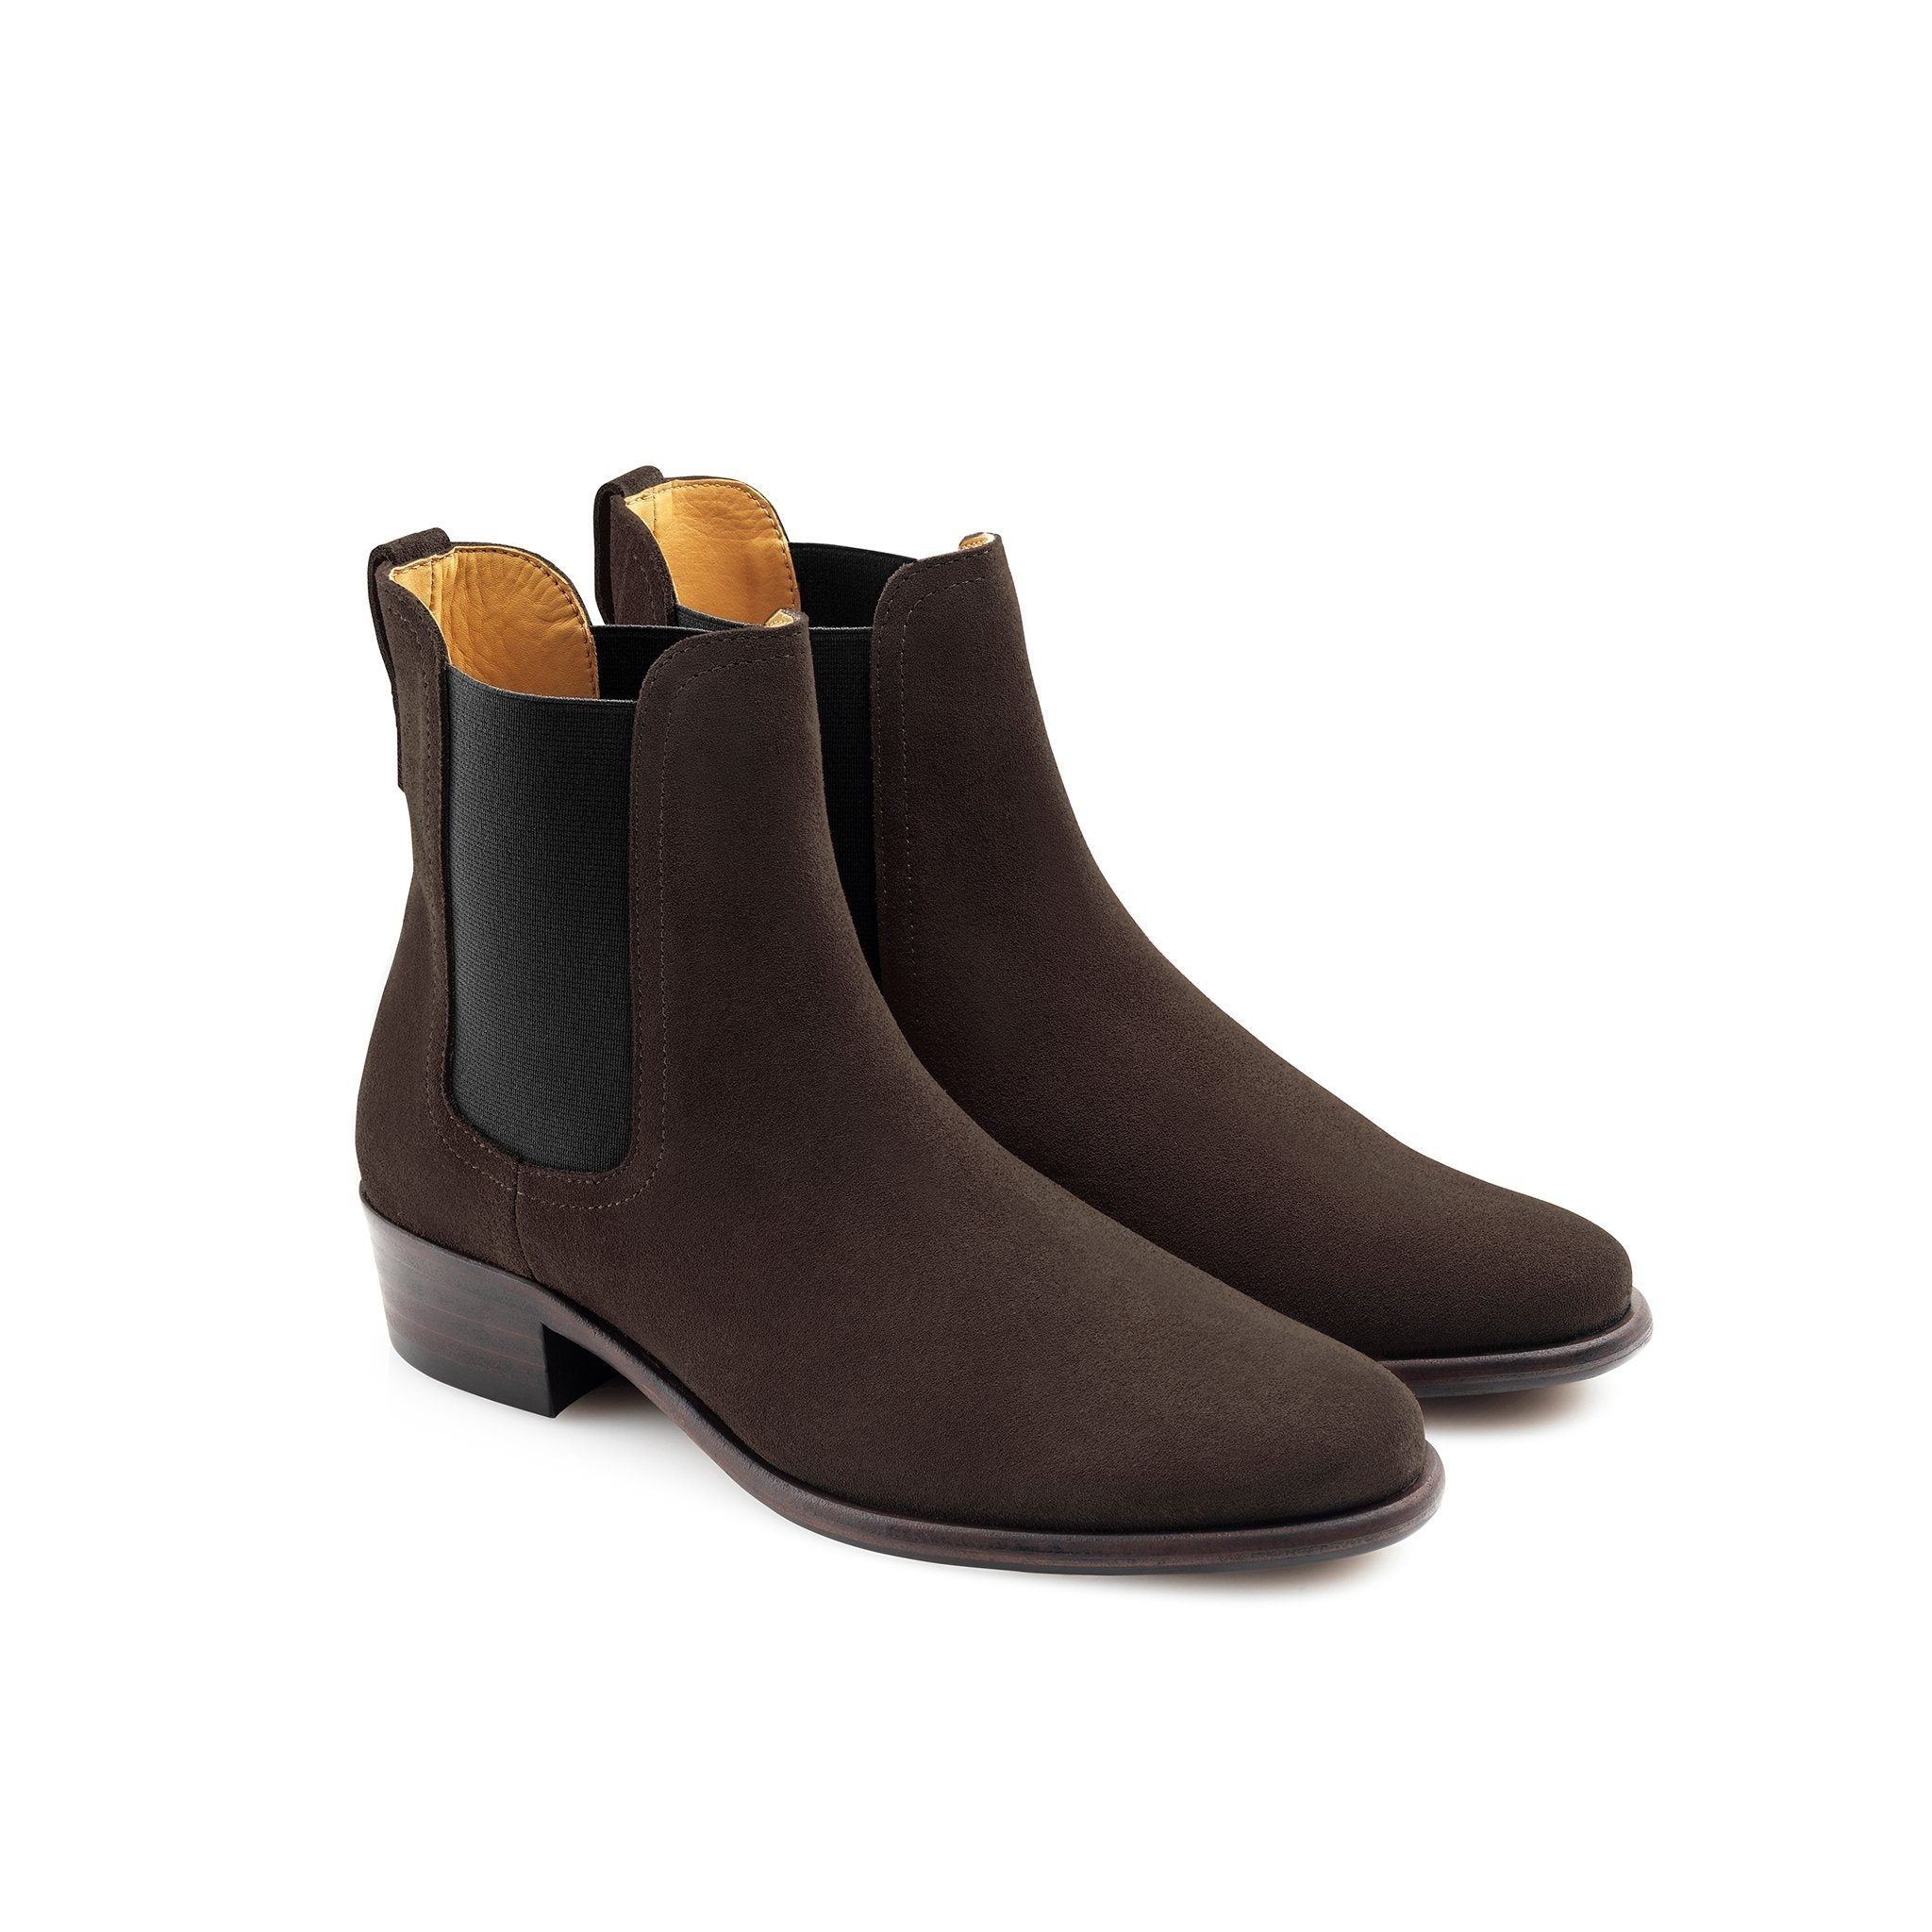 Chelsea Ladies Suede Boot, chocolate/mørkebrun